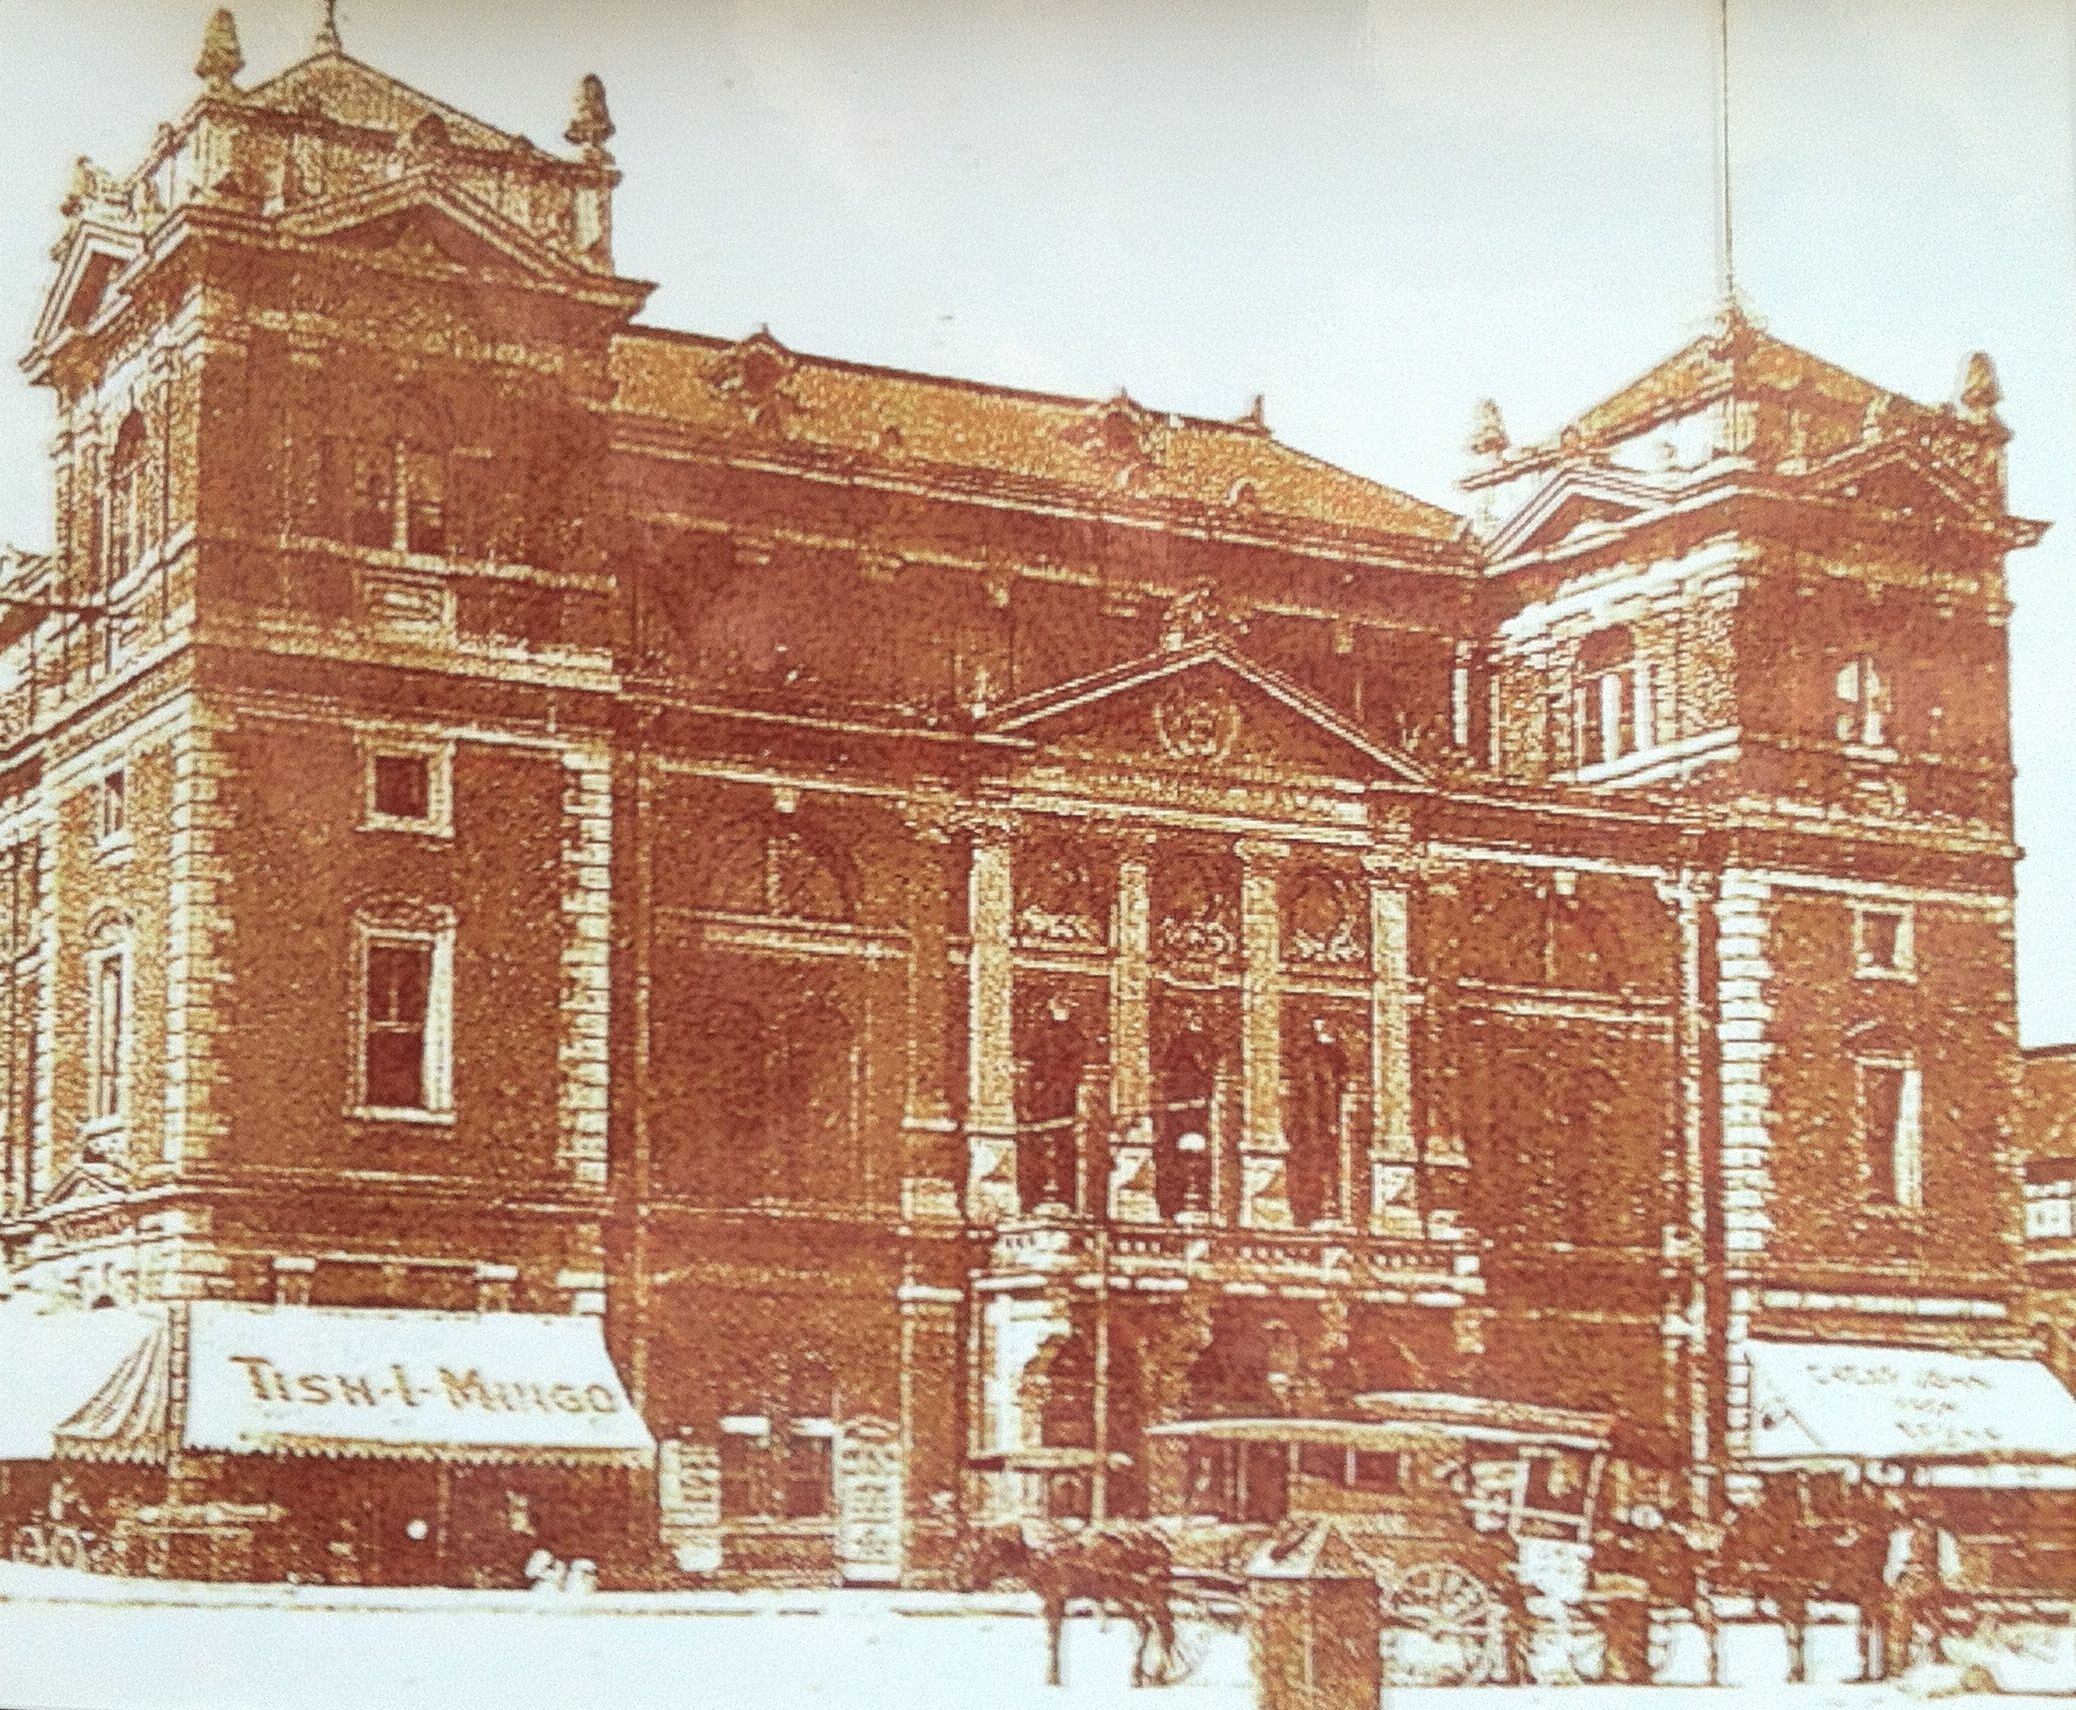 This stood over the catacombs from 1886 until 1958. This is Tomlinson Hall.  It burned down due to faulty electrical wiring.